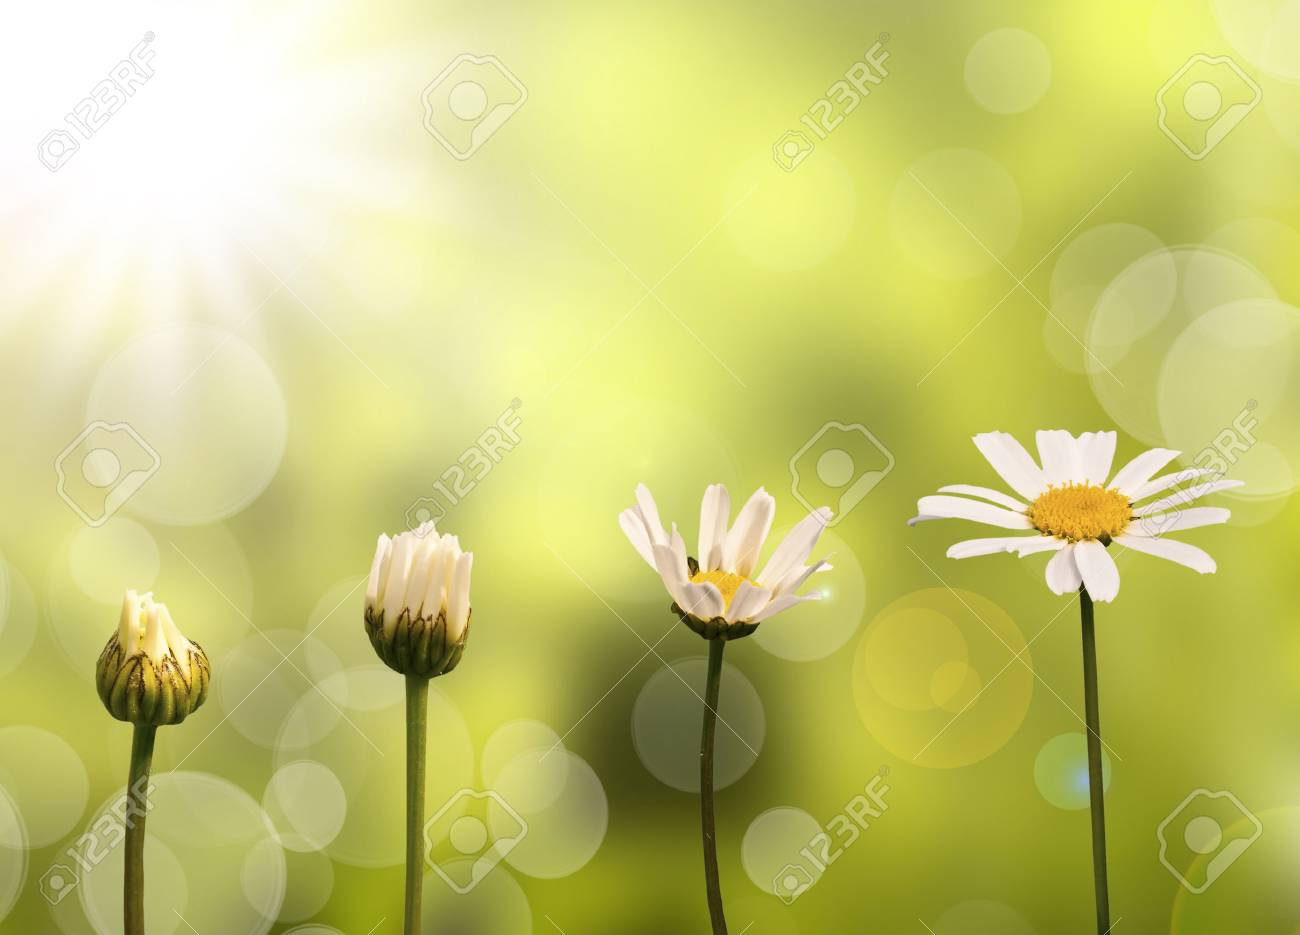 Daisies on green nature background, stages of growth - 34044407